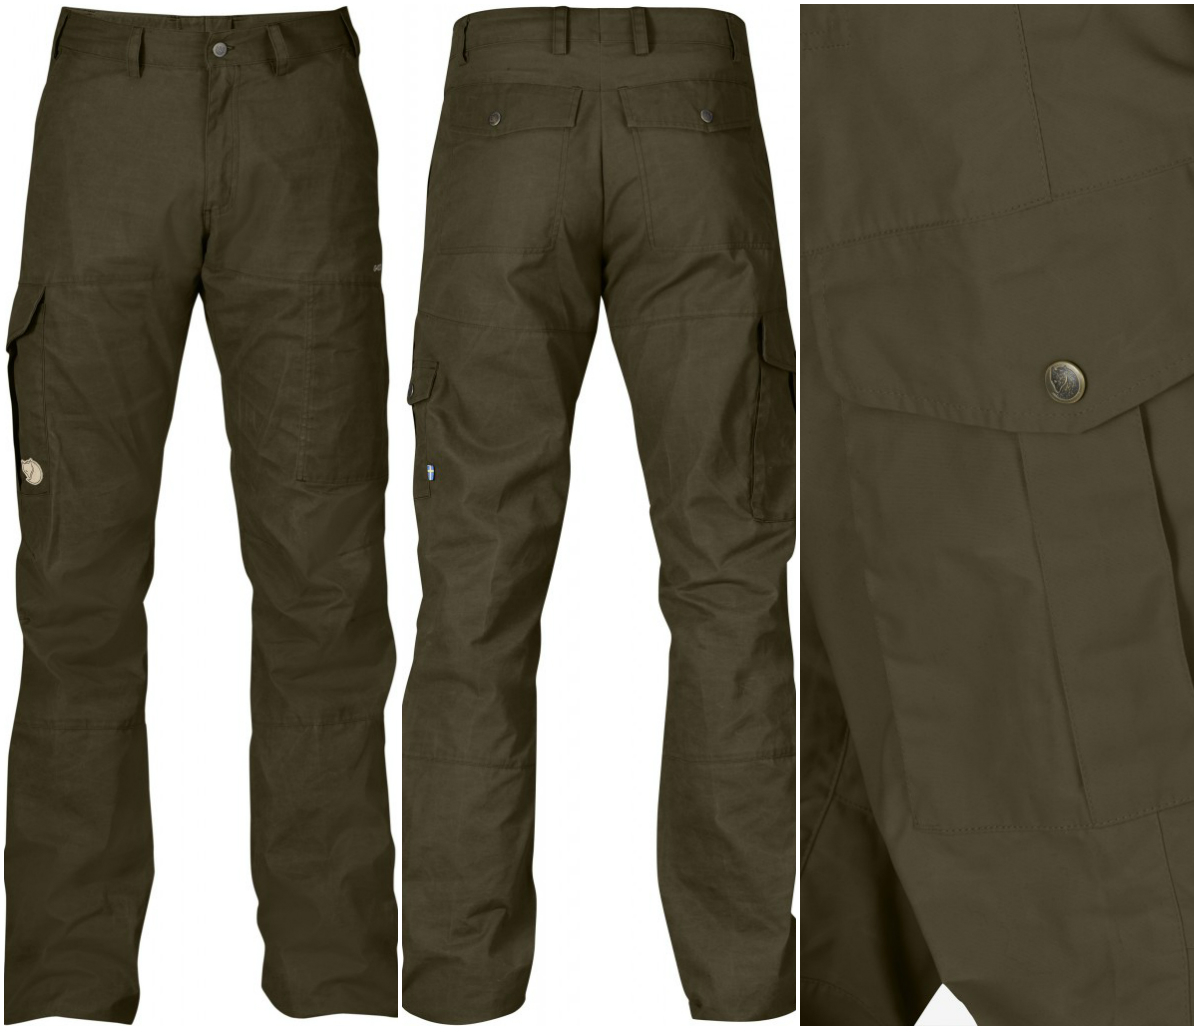 https://www.nepo.sk/tmp/import/products//fjall_raven_karl_pro_trousers_d__olive_nadrag.jpg | Nepo